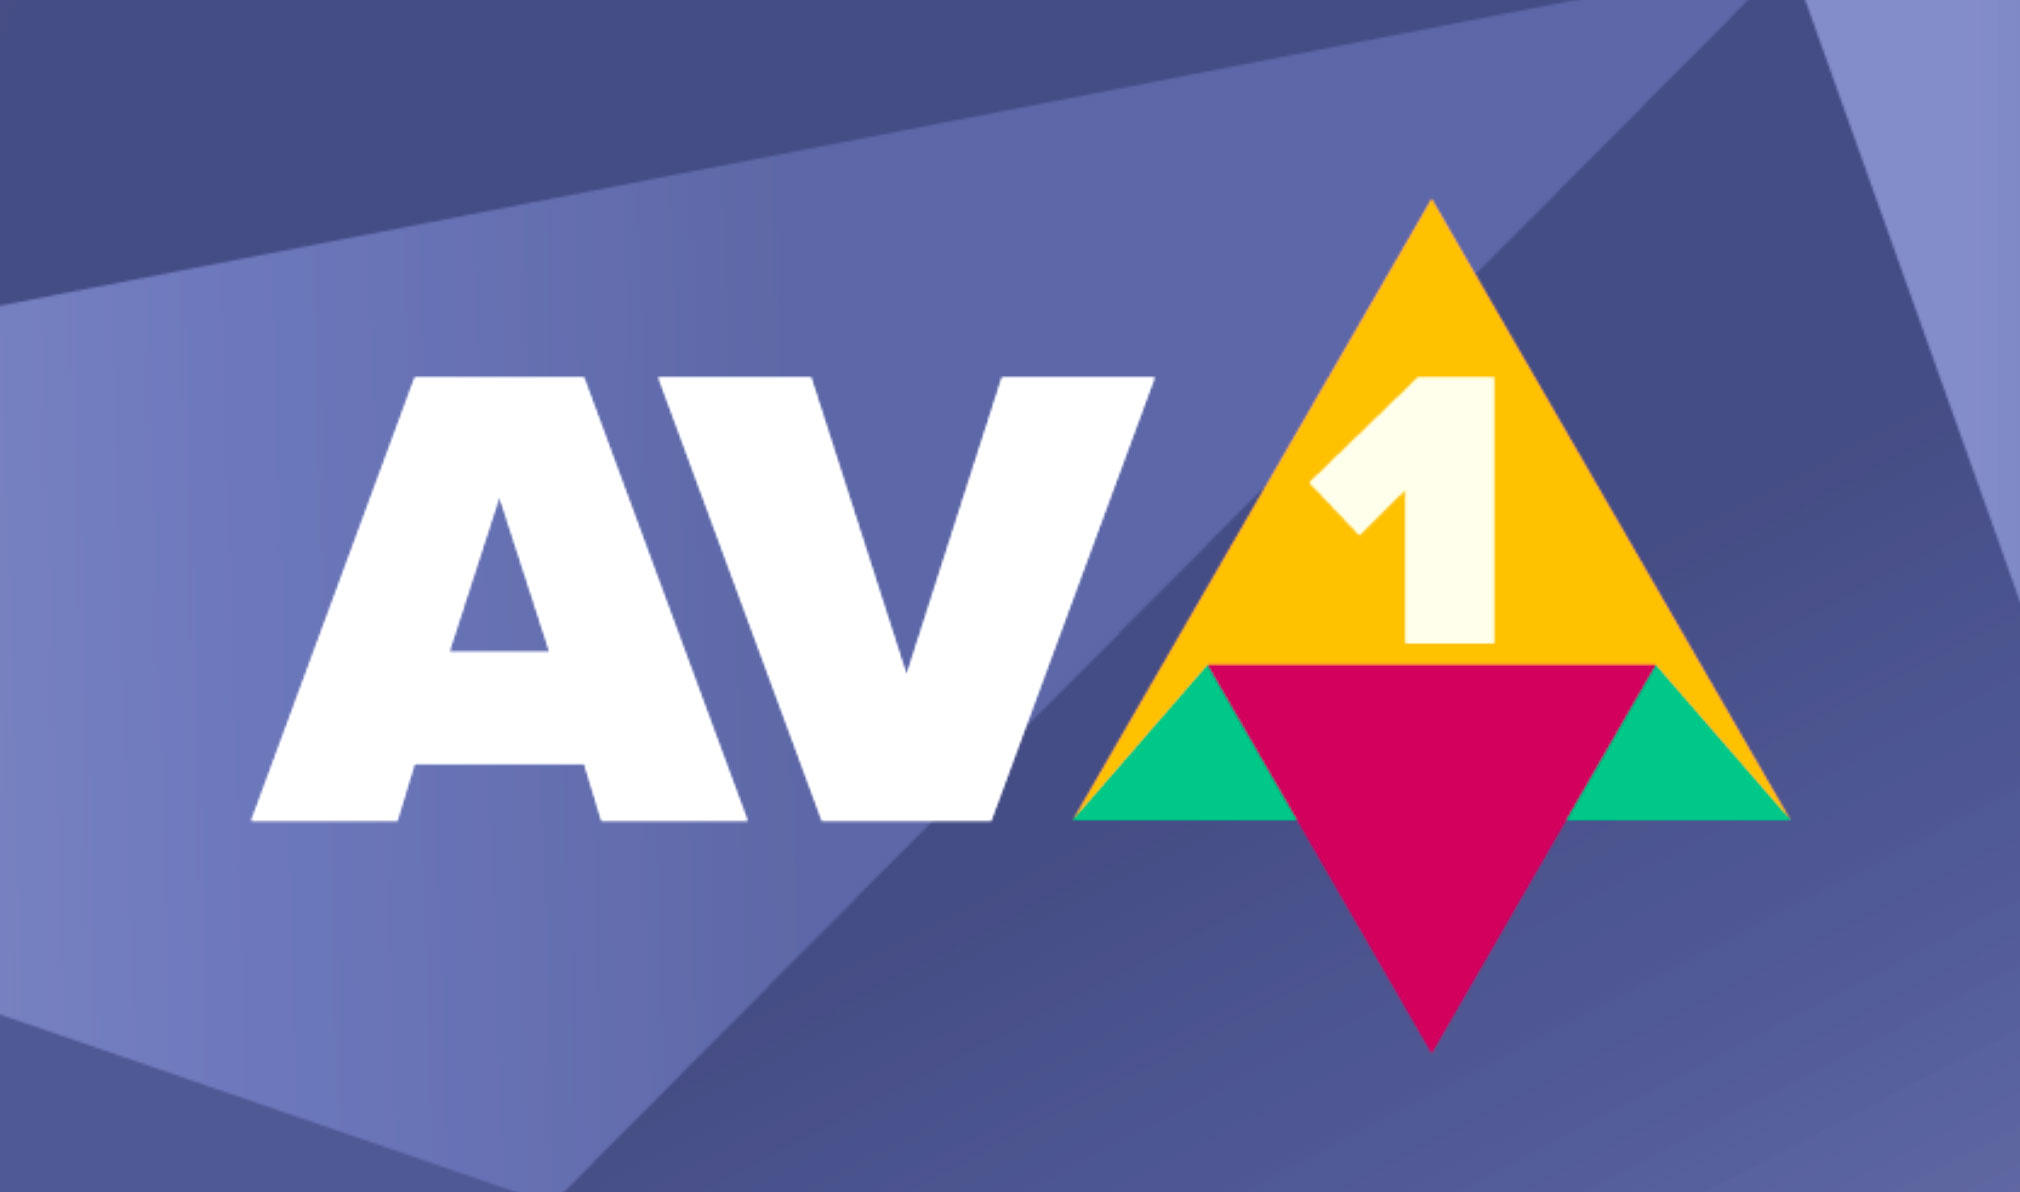 """AV1 is a video compression """"codec"""" designed to reduce the amount of data needed to store and stream video."""